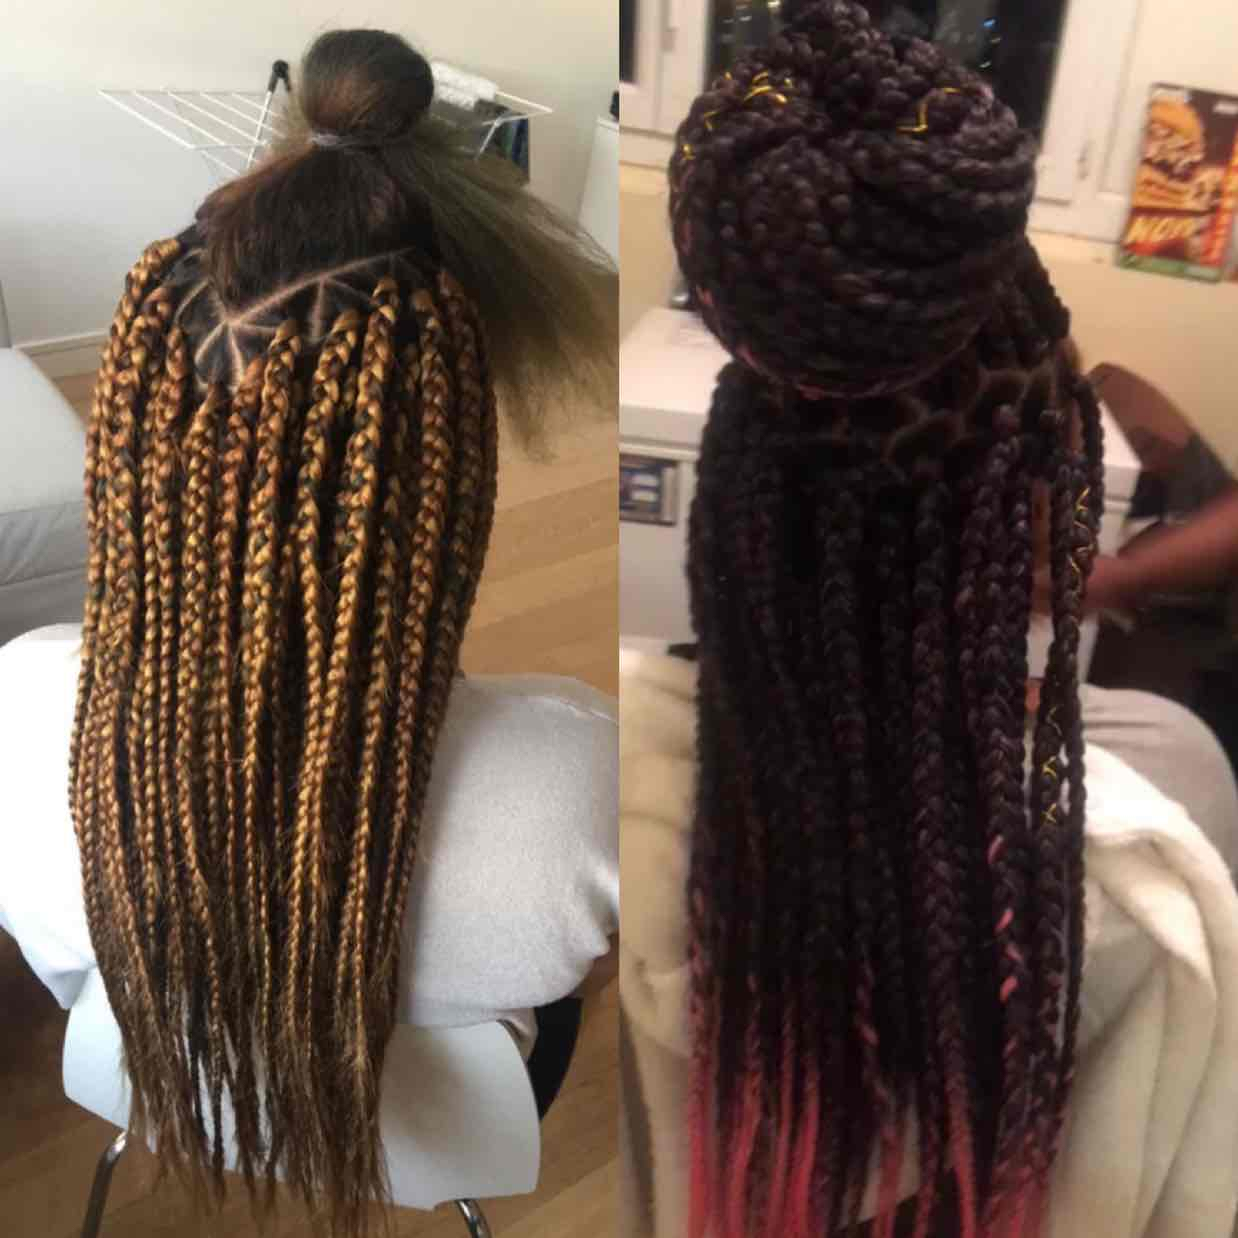 salon de coiffure afro tresse tresses box braids crochet braids vanilles tissages paris 75 77 78 91 92 93 94 95 ITGLJQLK